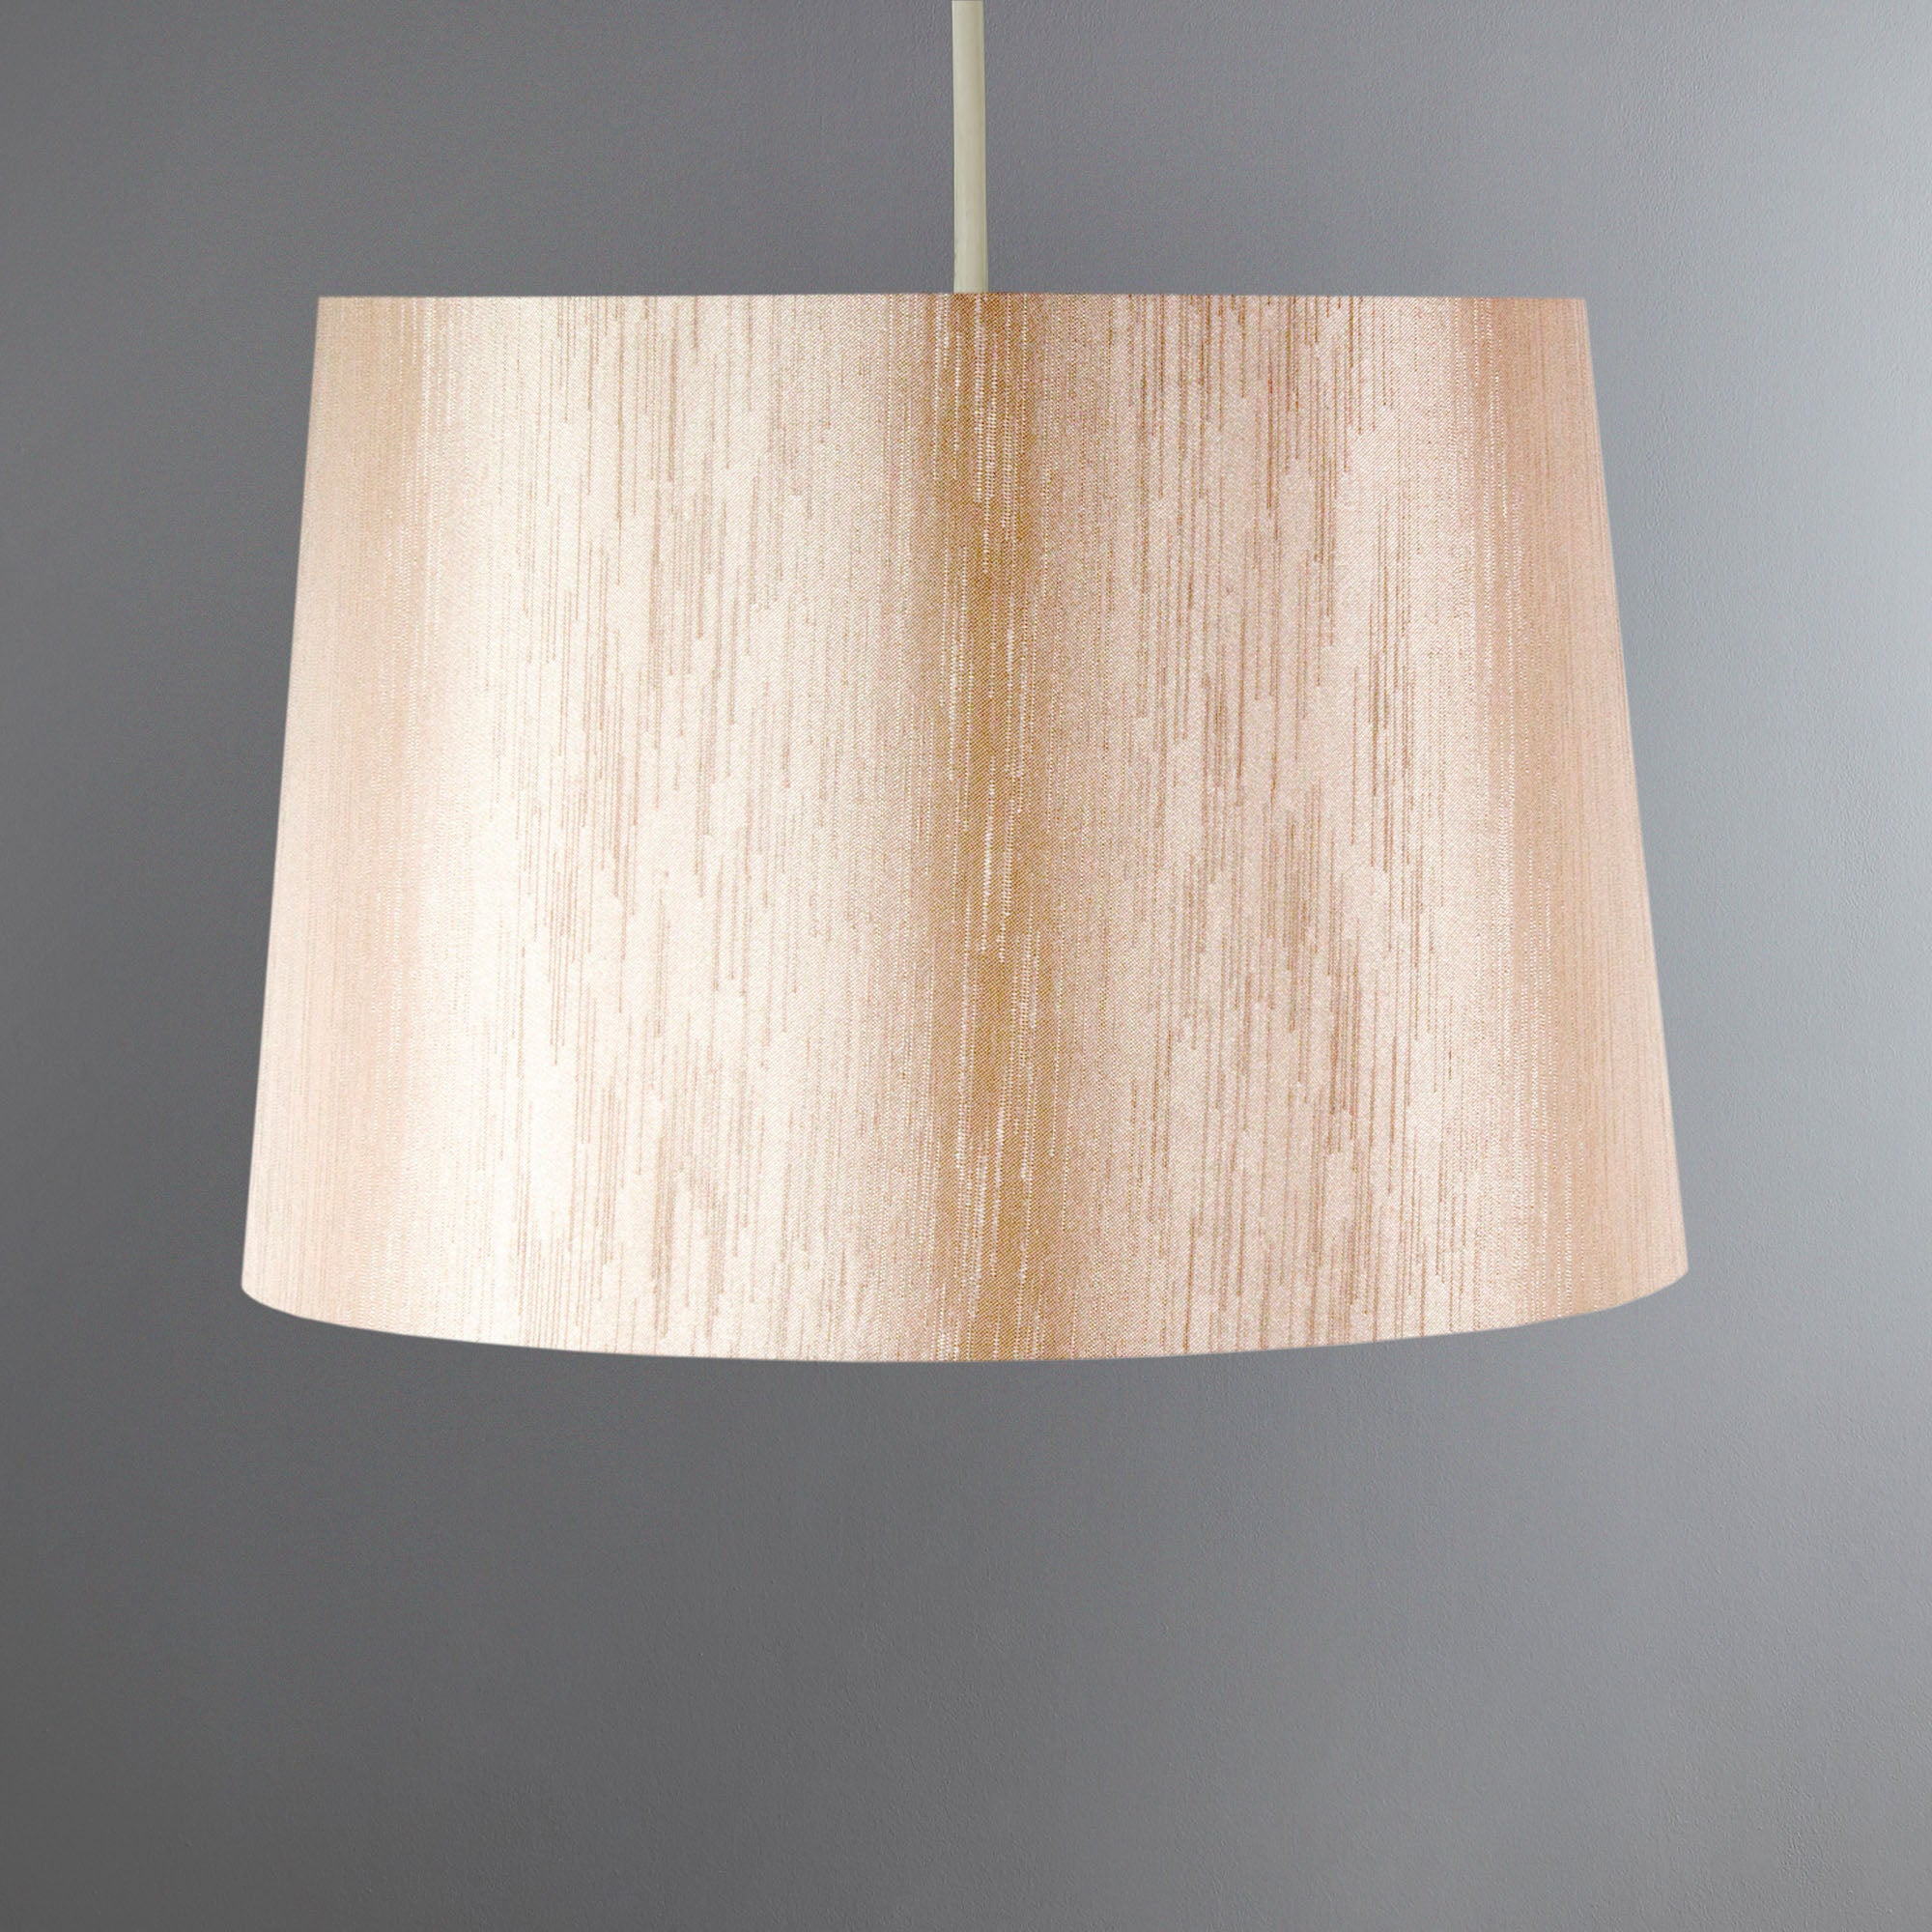 Lixing Silk Pendant Shade